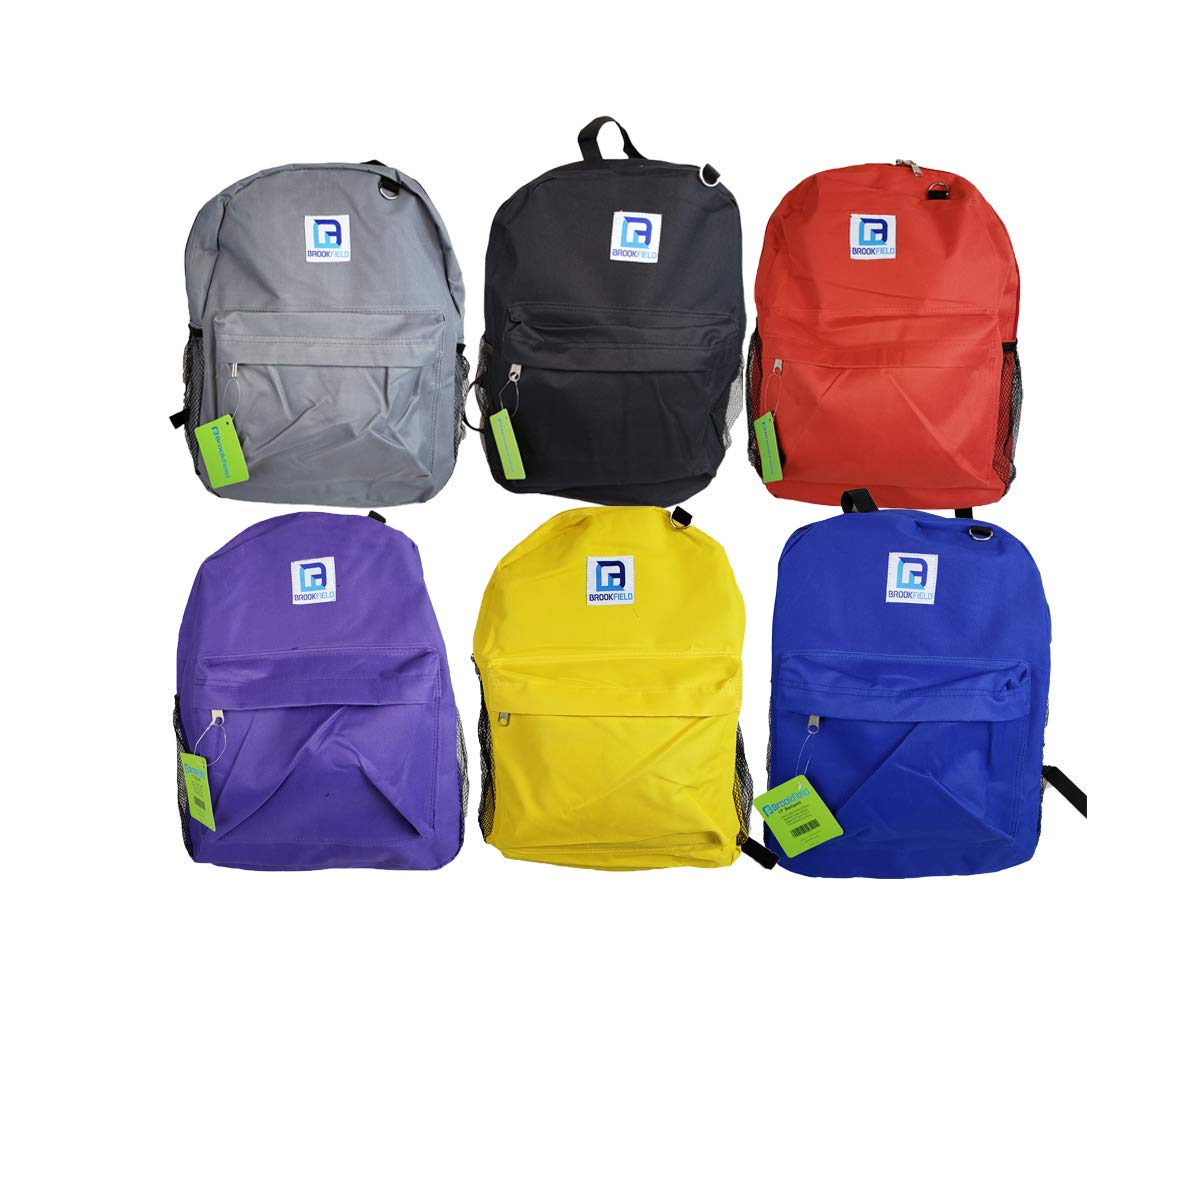 Brookfield Classic 17 Inch Wholesale Mesh Backpacks in Assorted Colors - Bulk Case of 24 Bookbags by Brookfield